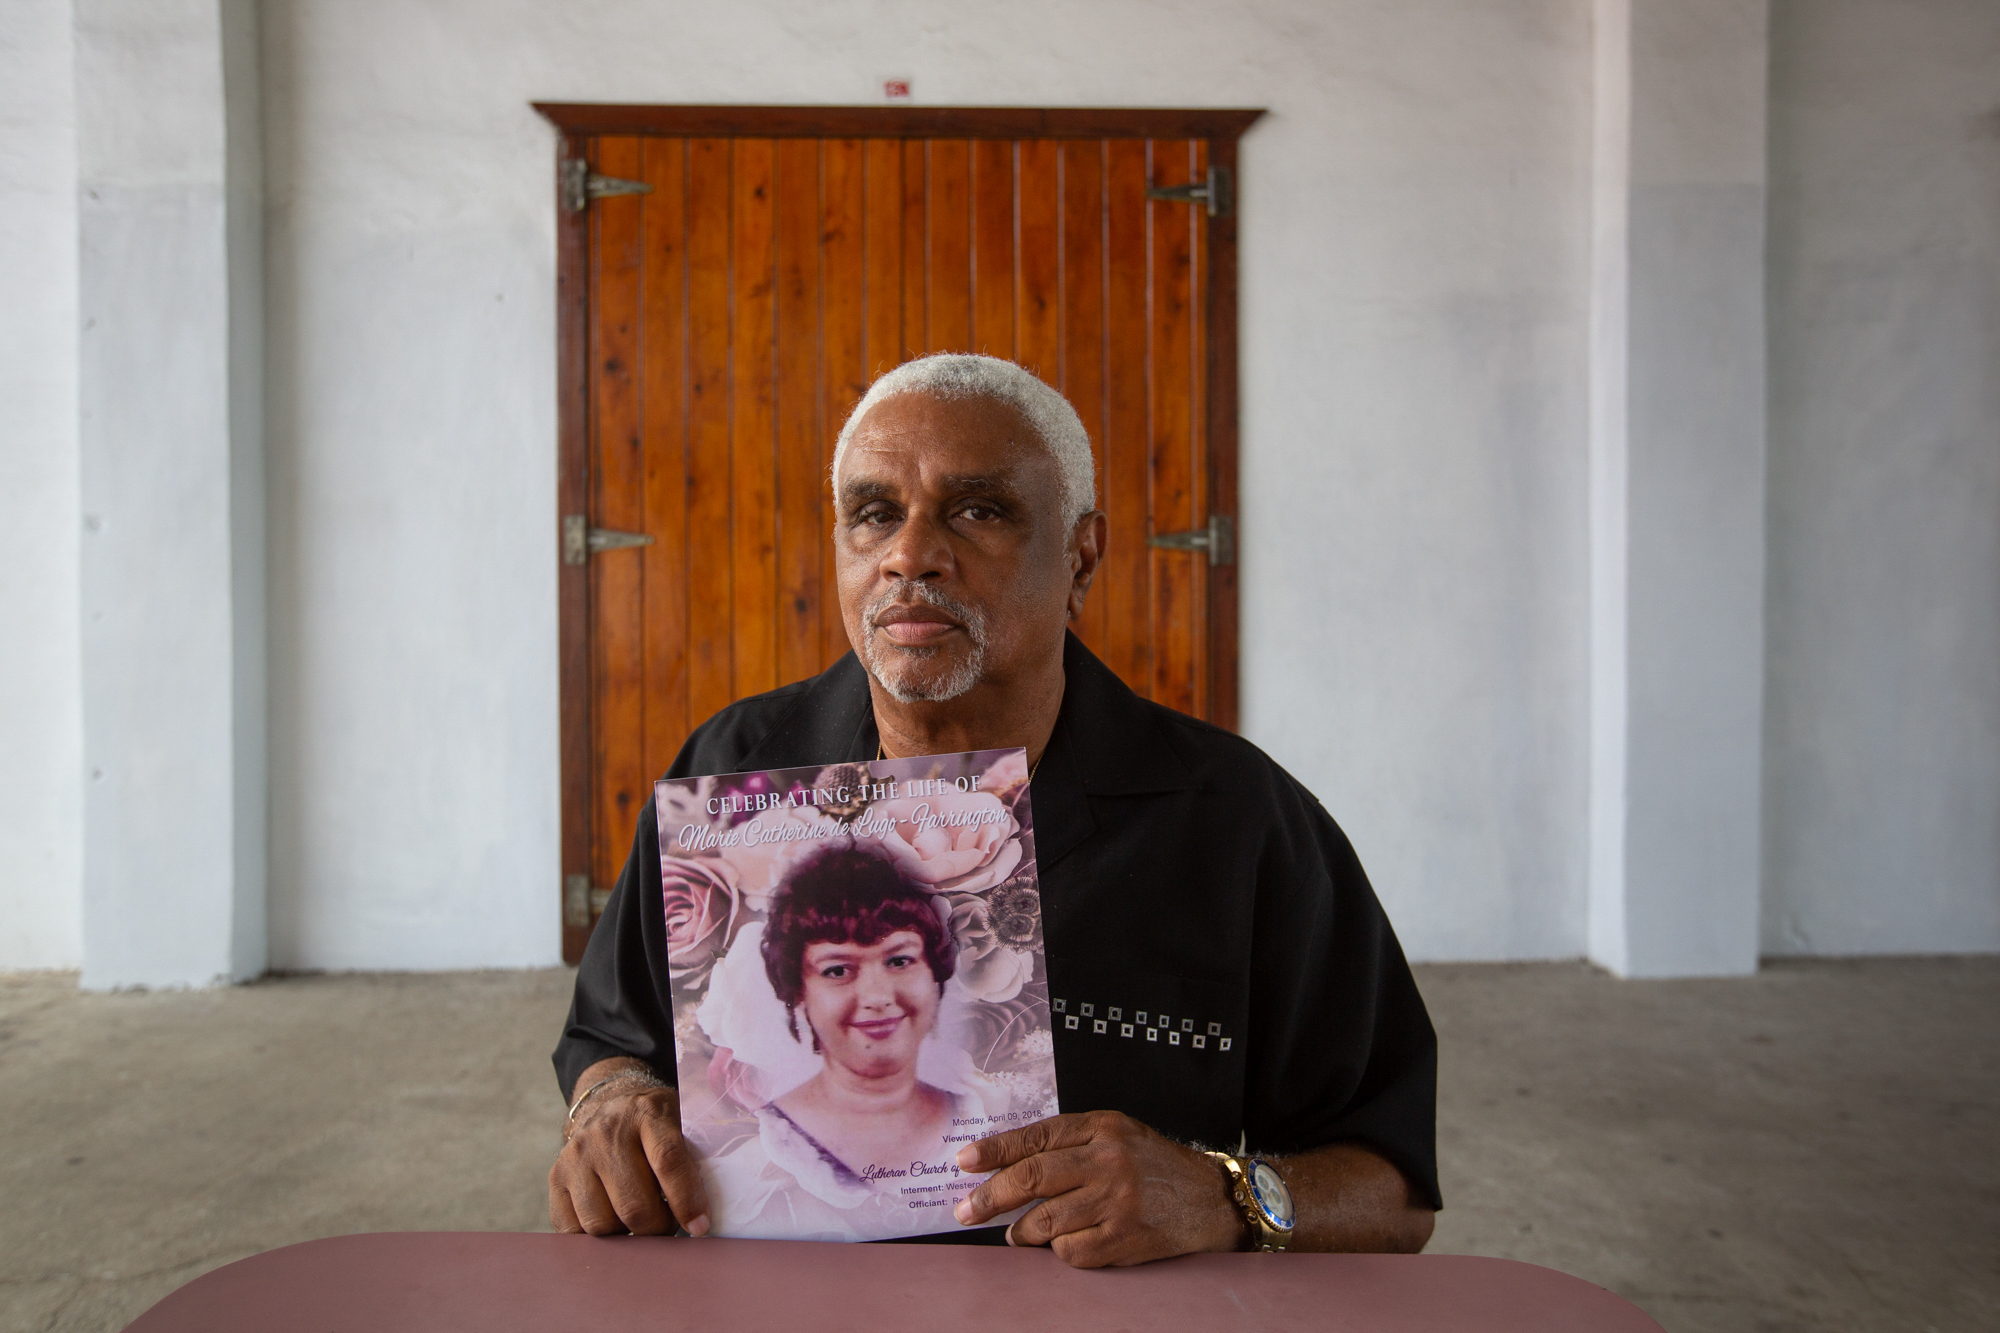 Michael Farrington - Michael Farrington of St. Thomas, U.S. Virgin Islands, holds a copy of his wife's funeral program. Marie Catherine de Lugo-Farrington was medically evacuated to Puerto Rico before Hurricane Irma, then evacuated to the mainland before Hurricane Maria hit Puerto Rico. She died shortly after Farrington brought her home to St. Thomas. He says FEMA did a poor job of tracking patients who were medically evacuated. (Anya Magnuson/News21)